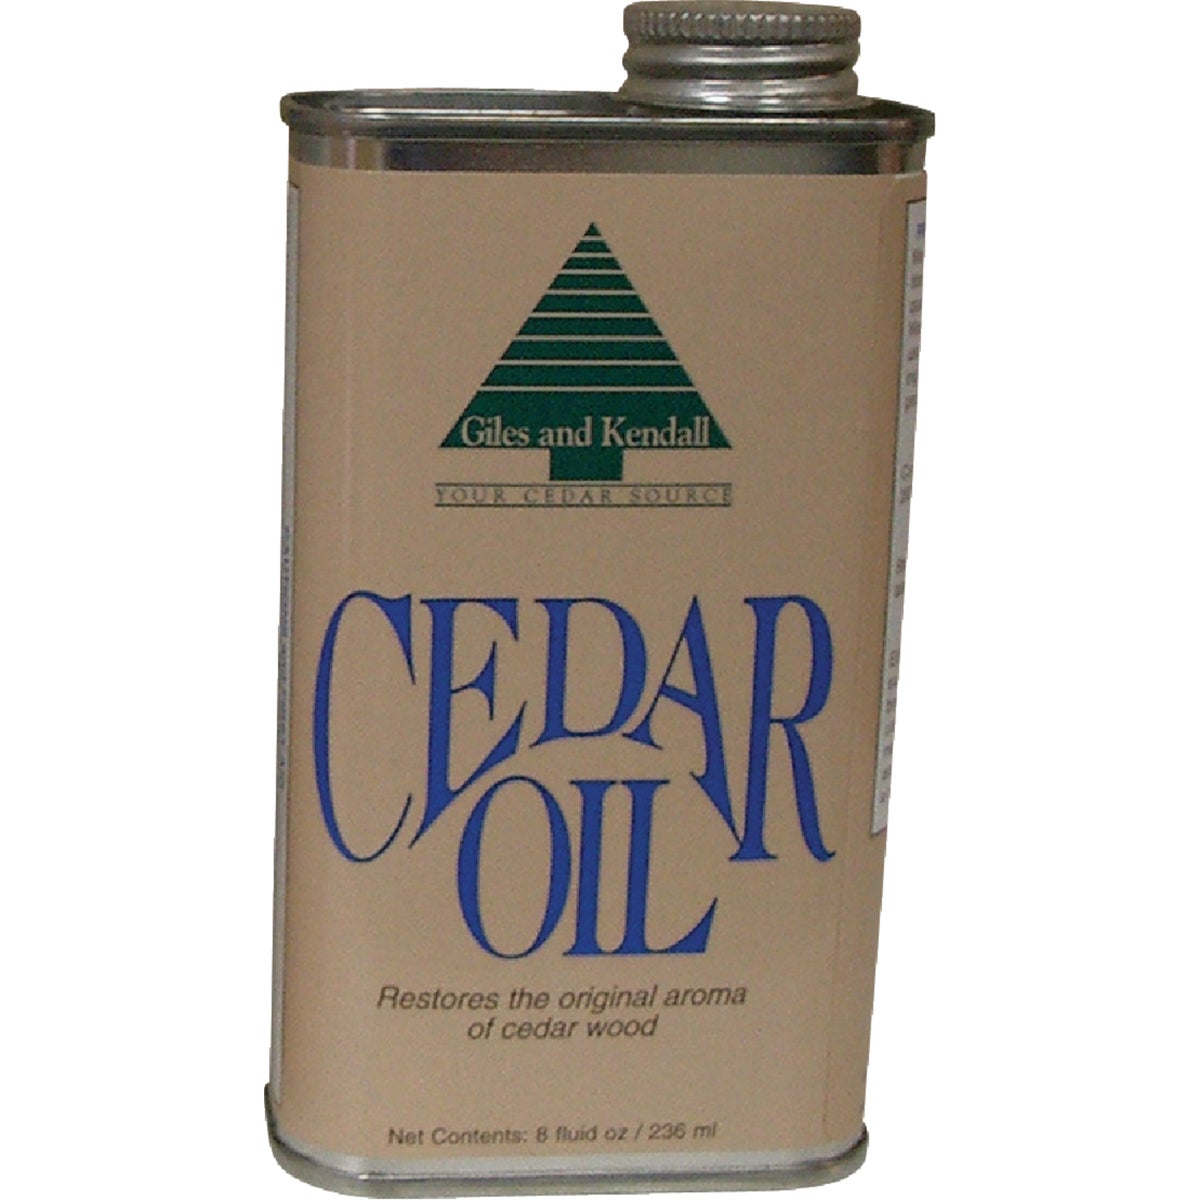 8OZ CEDAR OIL - OIL 12-8 by Giles & Kendall Inc